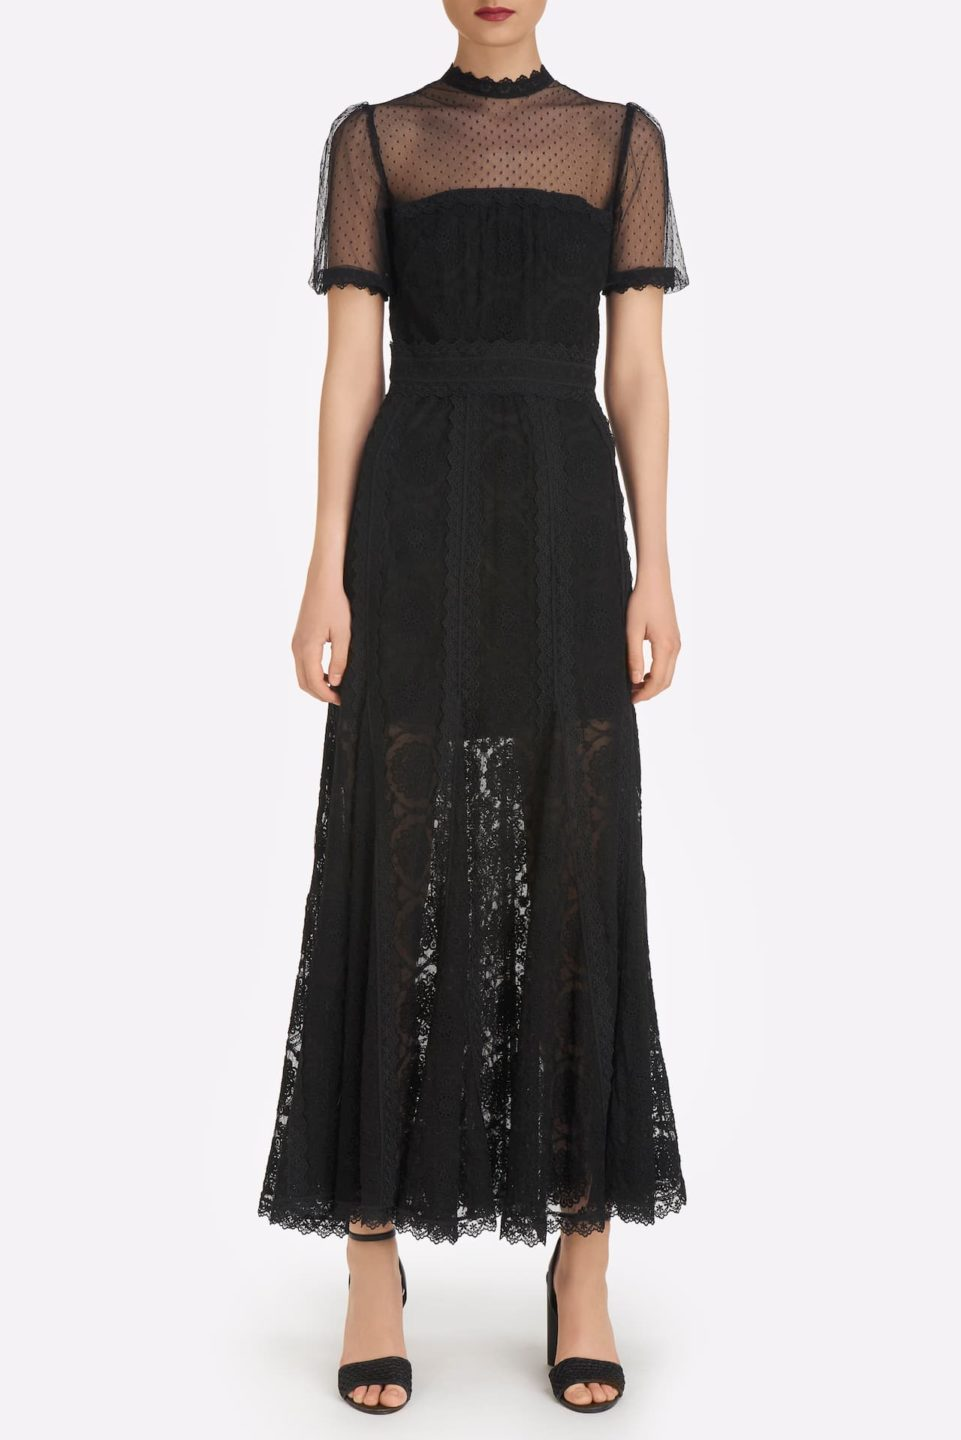 Andressa SS2139 Black Embroidered Rosetta French Tulle Godet Dress with Illusion Neckline and puff Sleeves